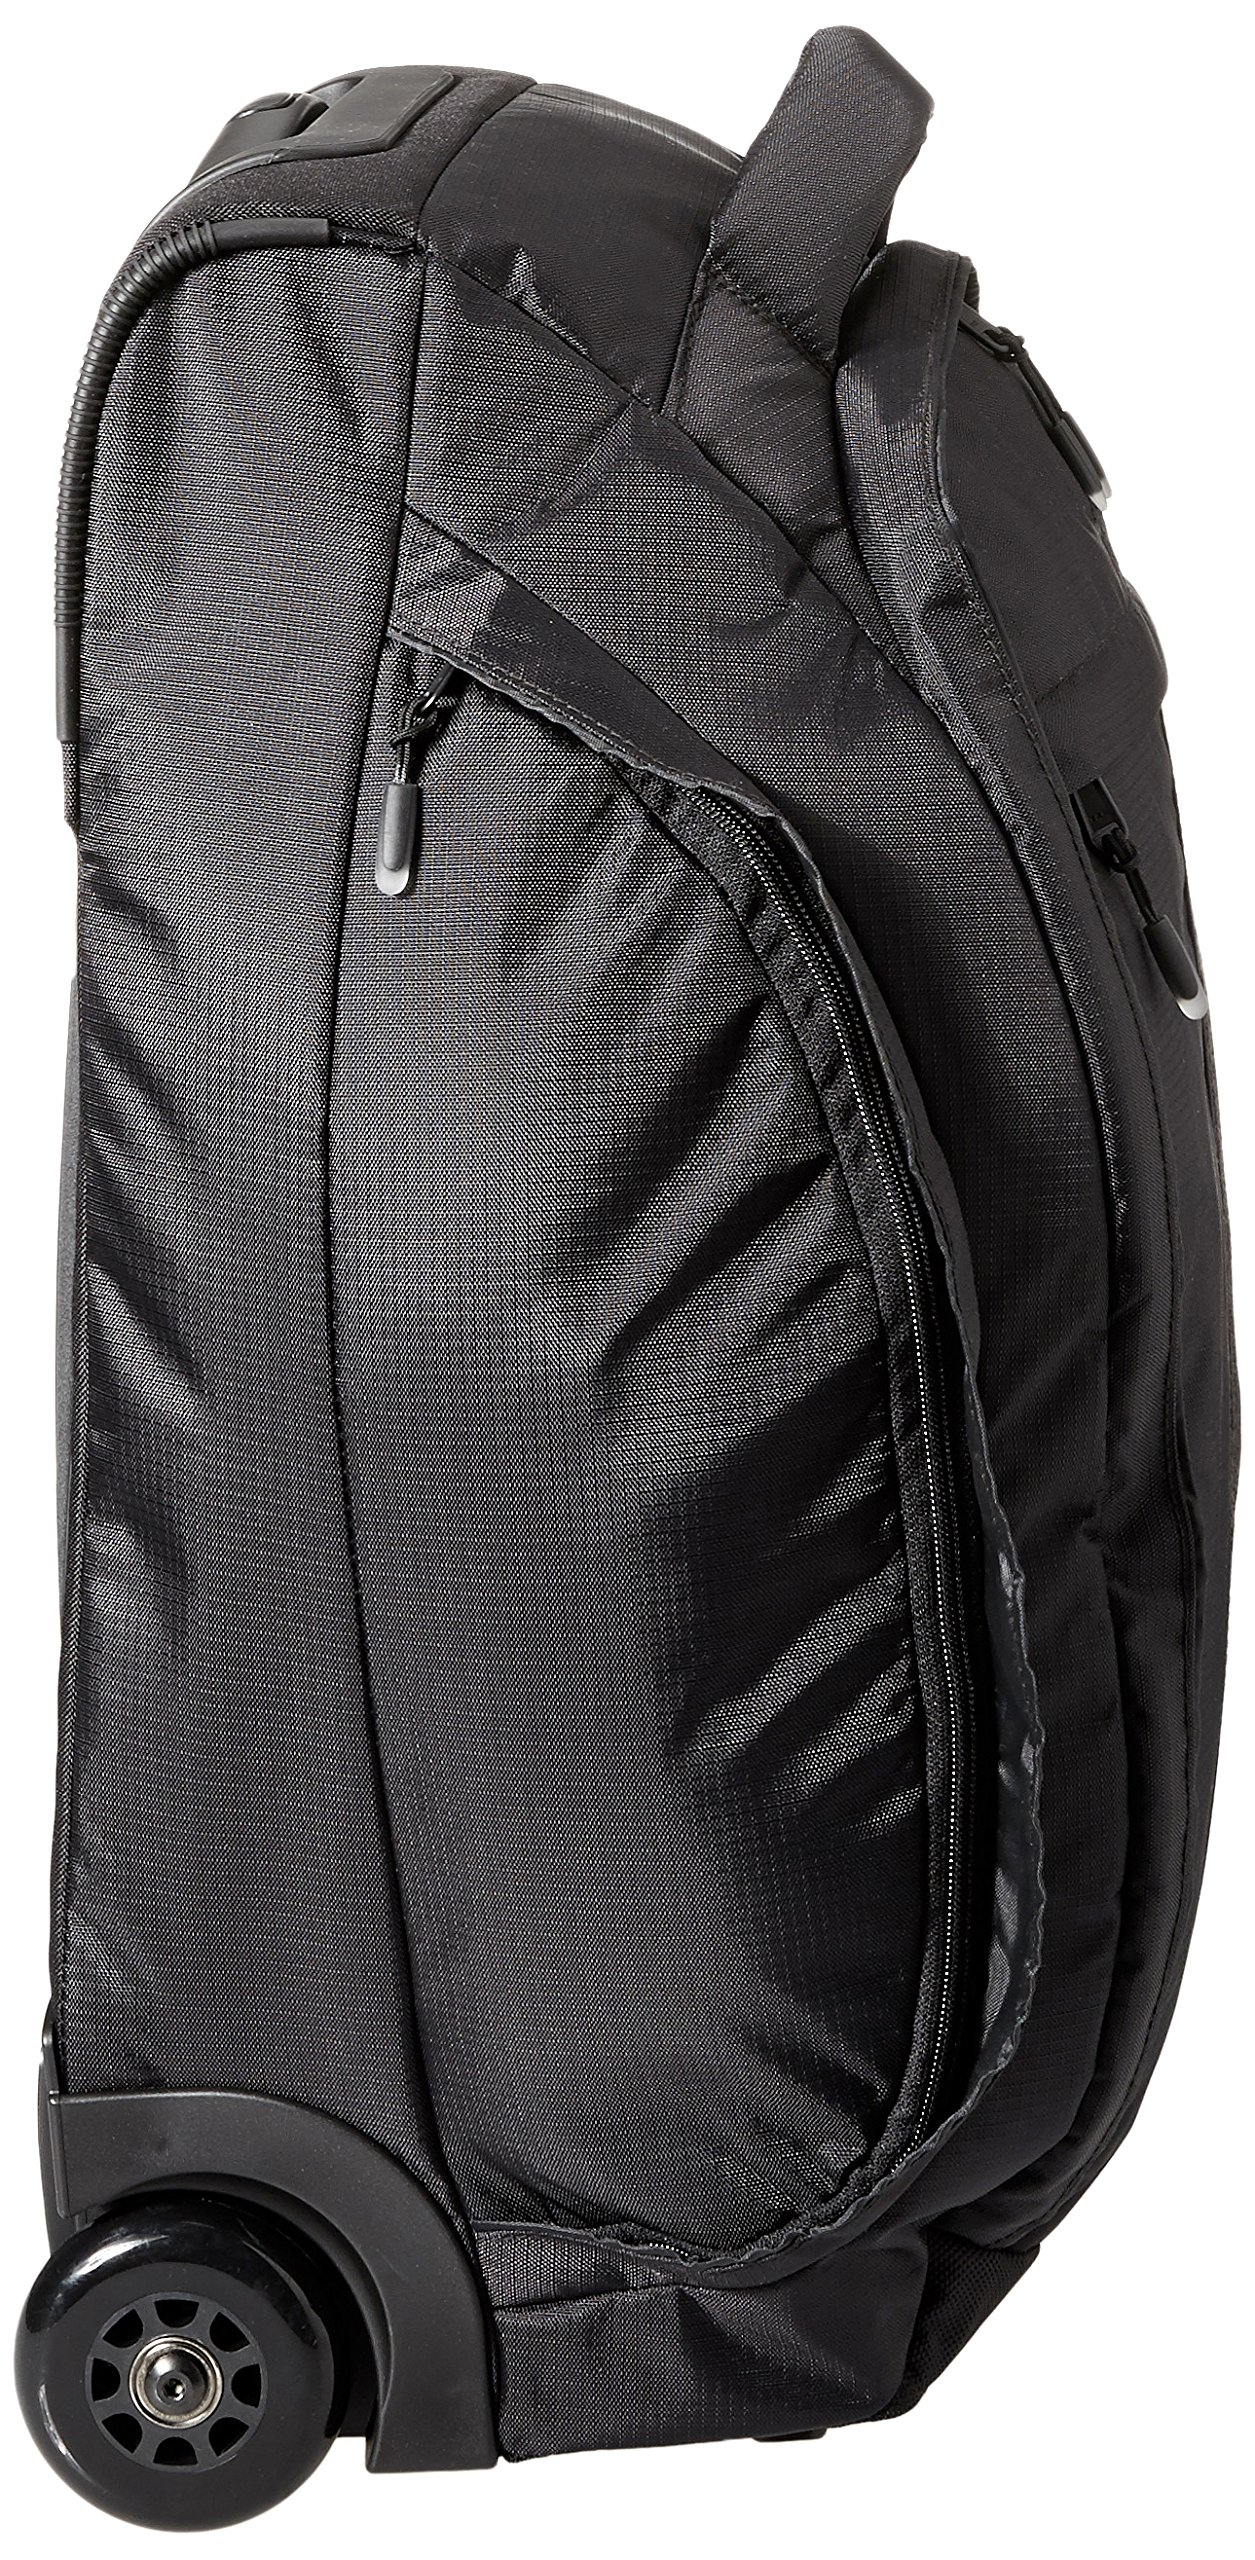 adidas Duel 21-Inch Wheel Bag, Black, One Size by adidas (Image #5)